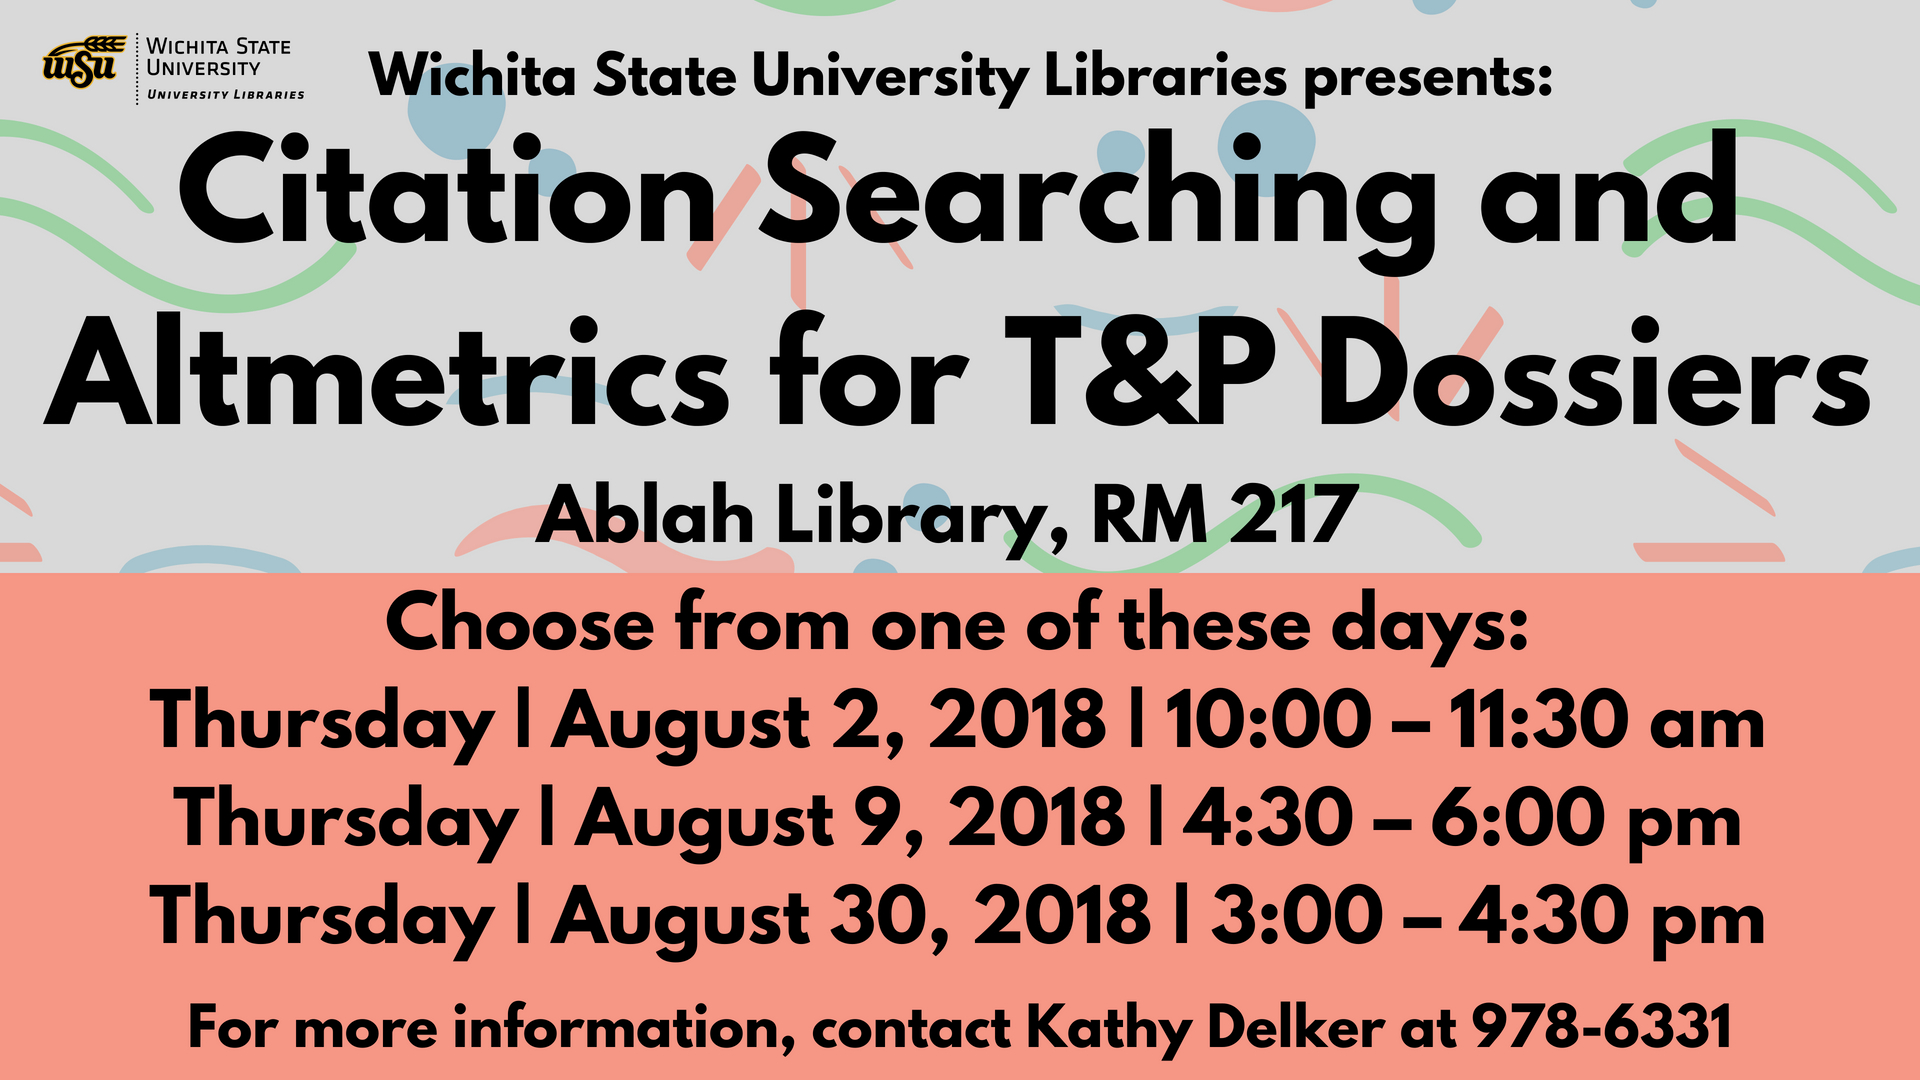 Citation Searching and Altmetrics for T&P Dossiers